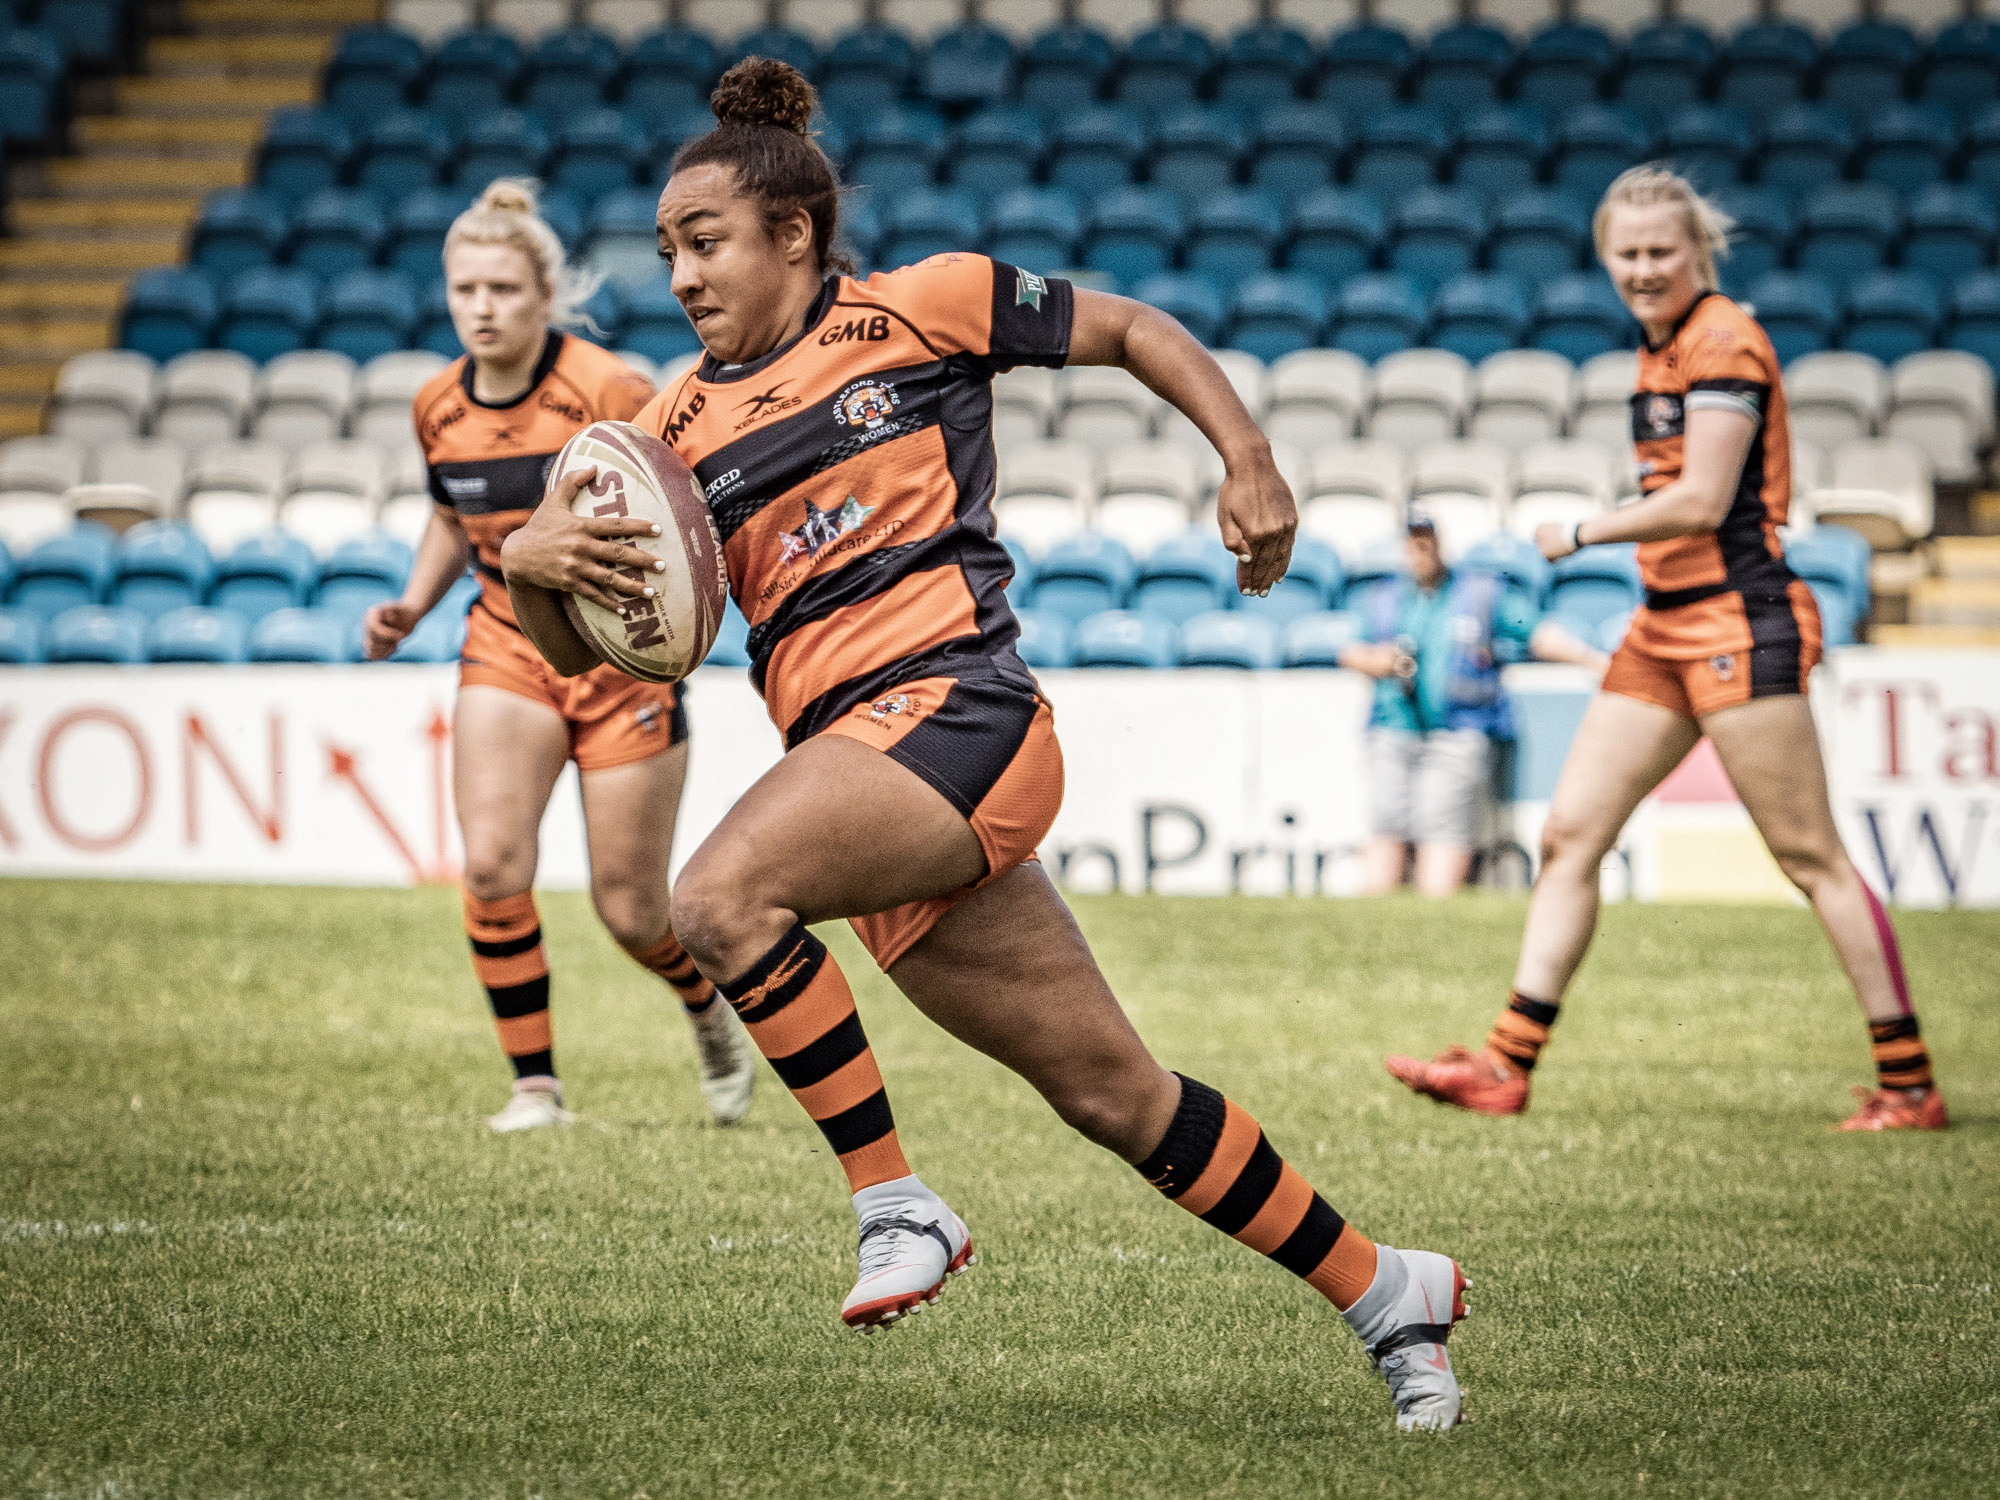 Kelsey Gentles - First half try coming up for Cas